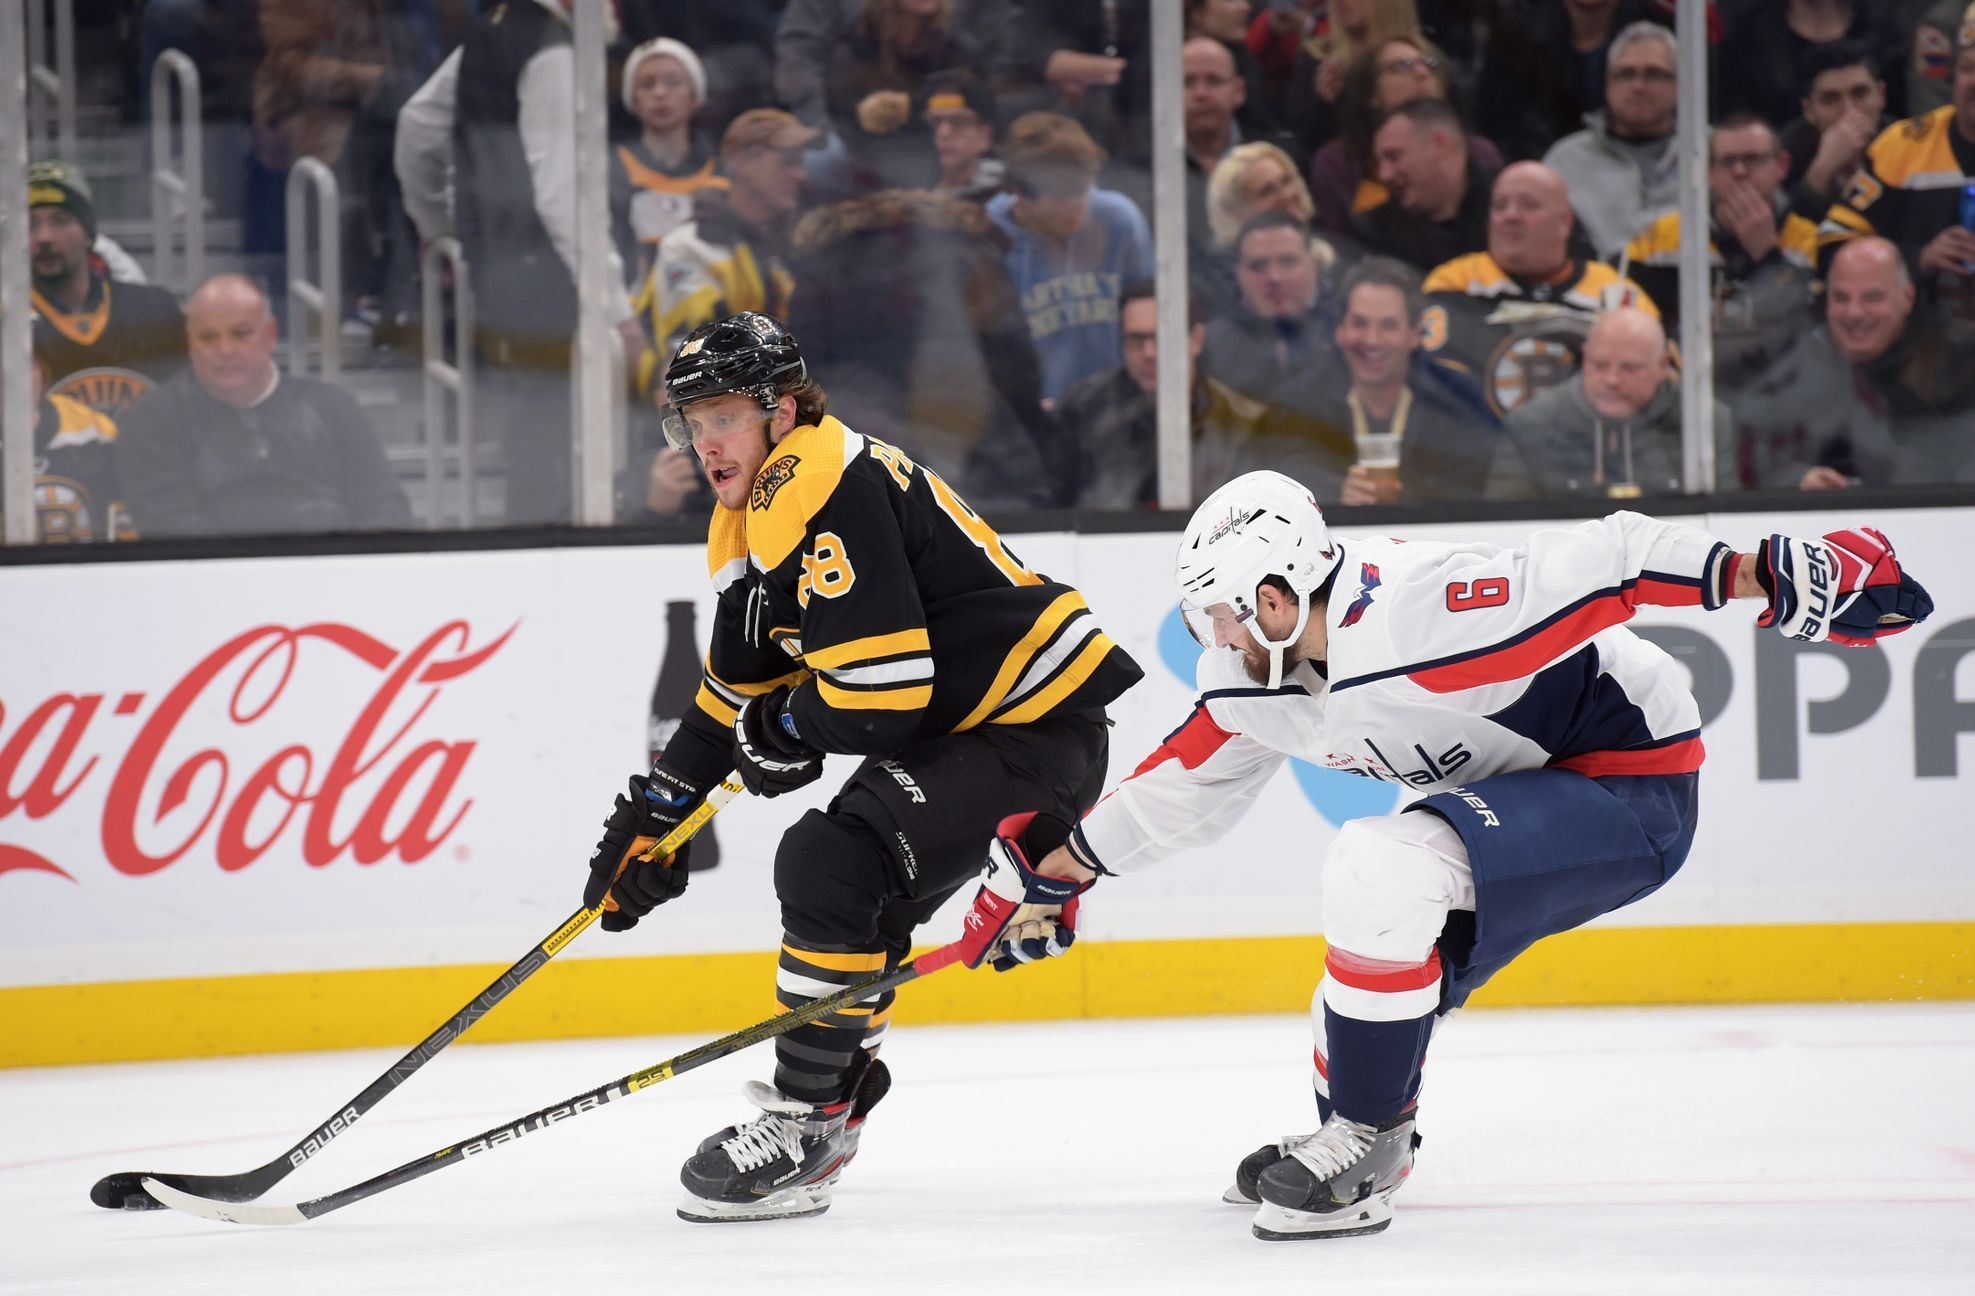 NHL 2019/20, Boston - Washington: David Pastrňák v souboji s Michalem Kempným